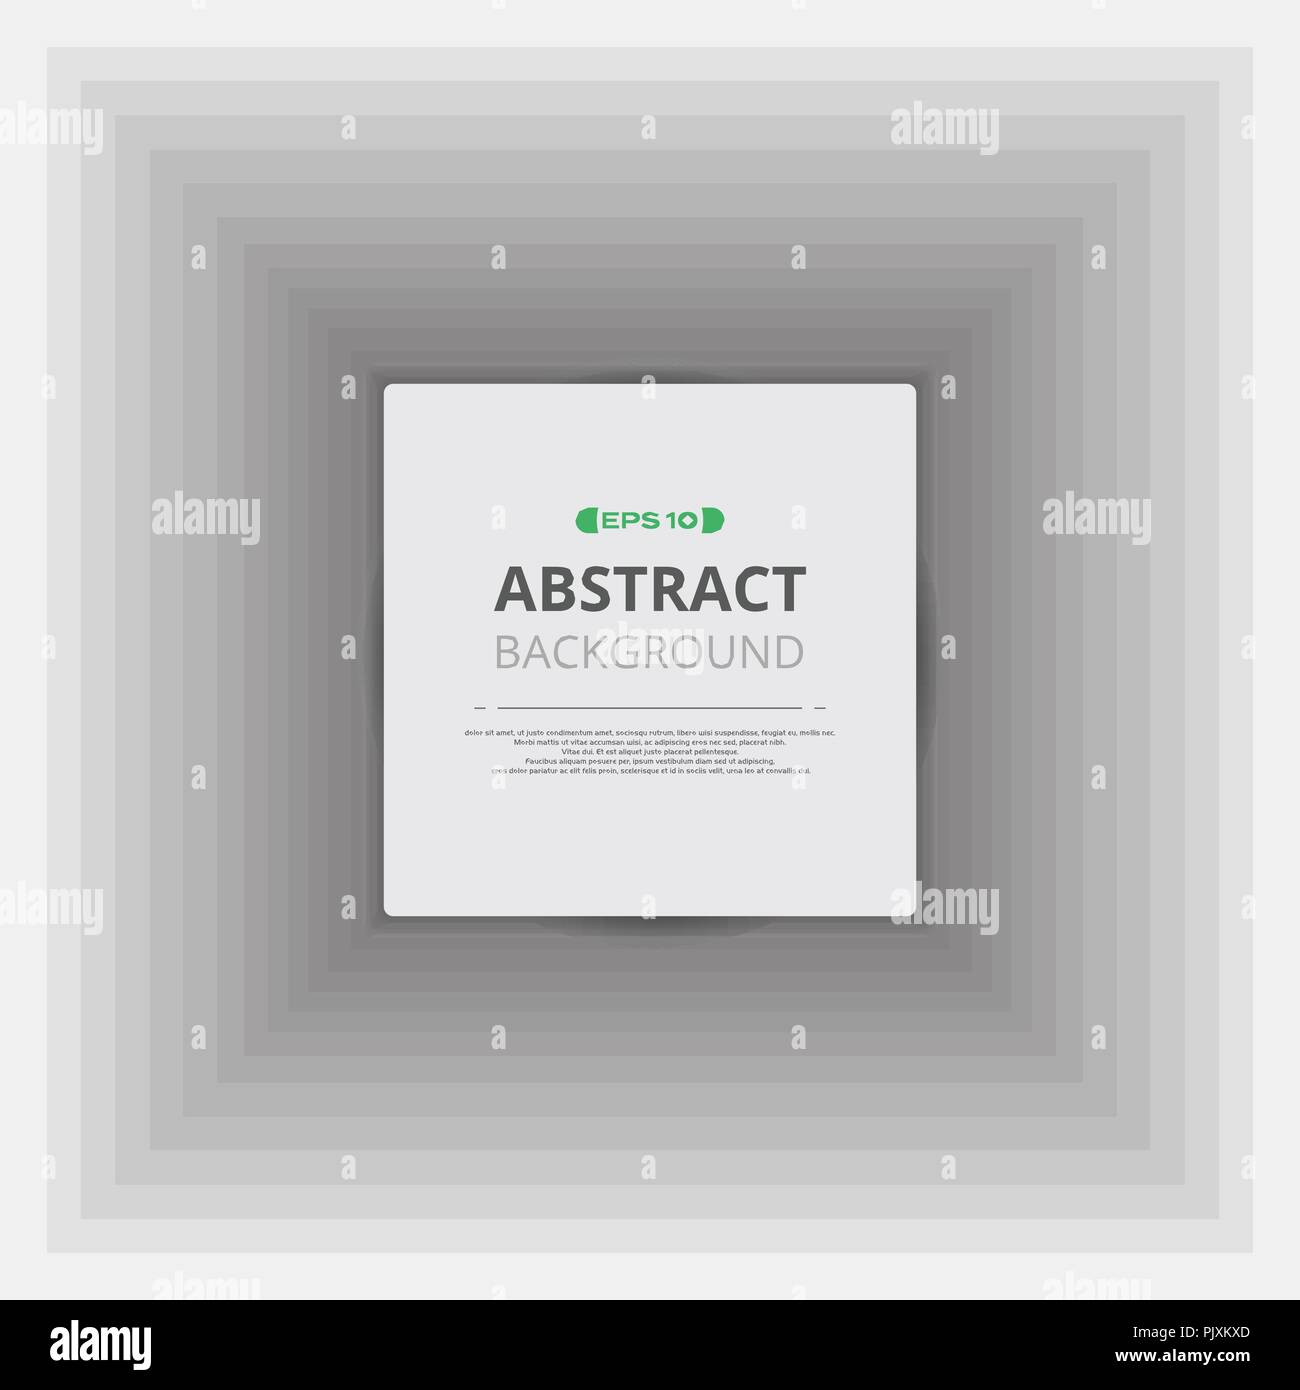 Abstract of free space geometric pattern background vector